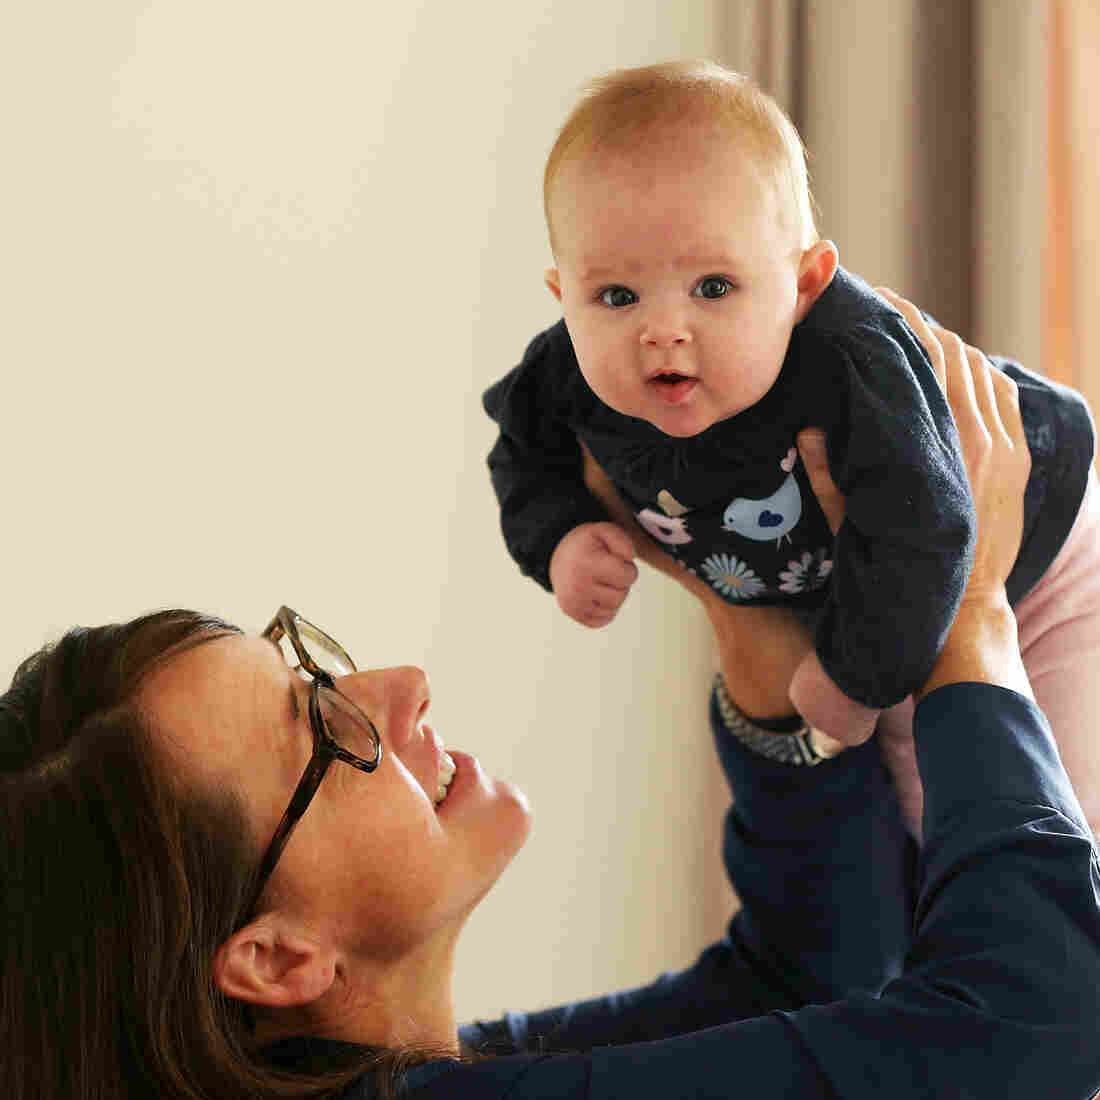 Lots Of Other Countries Mandate Paid Leave. Why Not The U.S.?